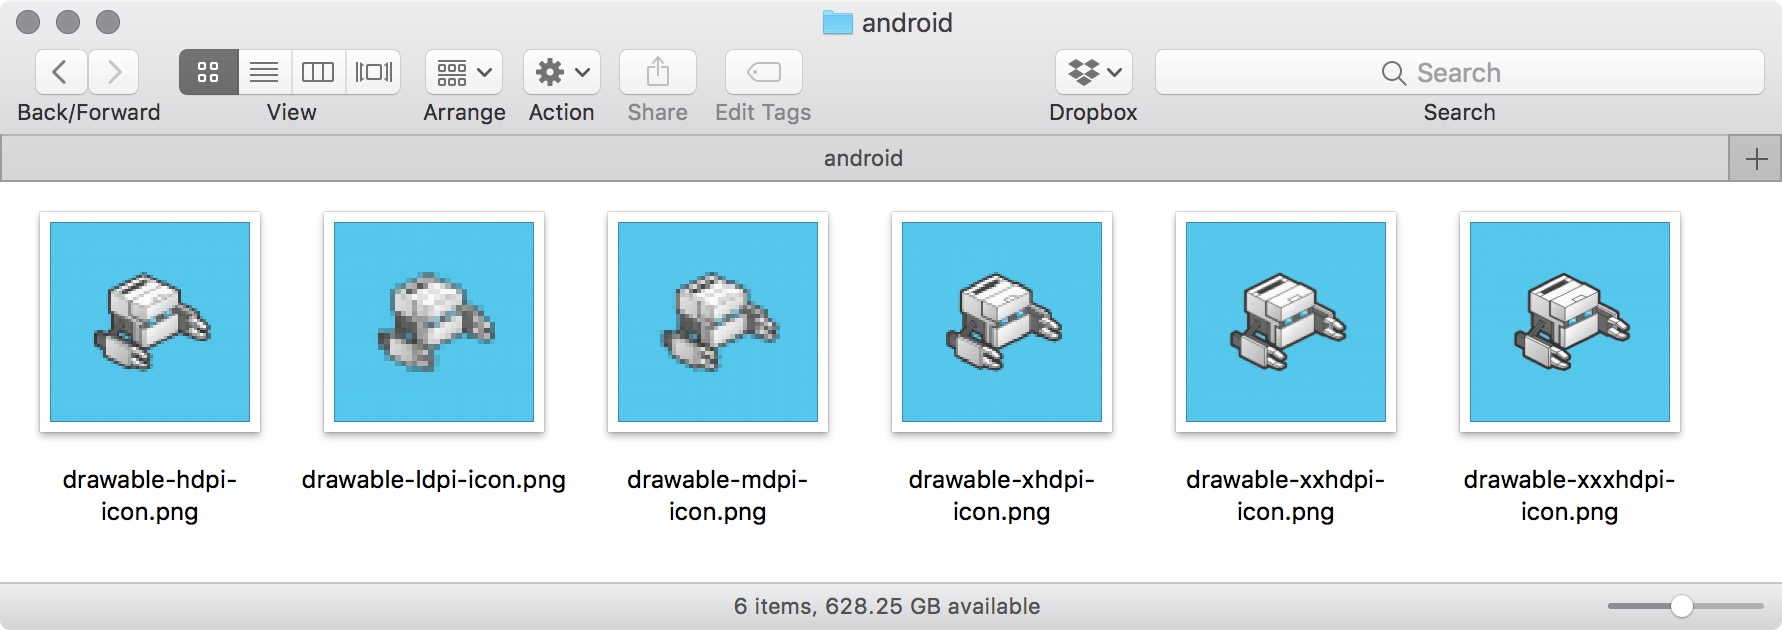 figure #3: Android icons